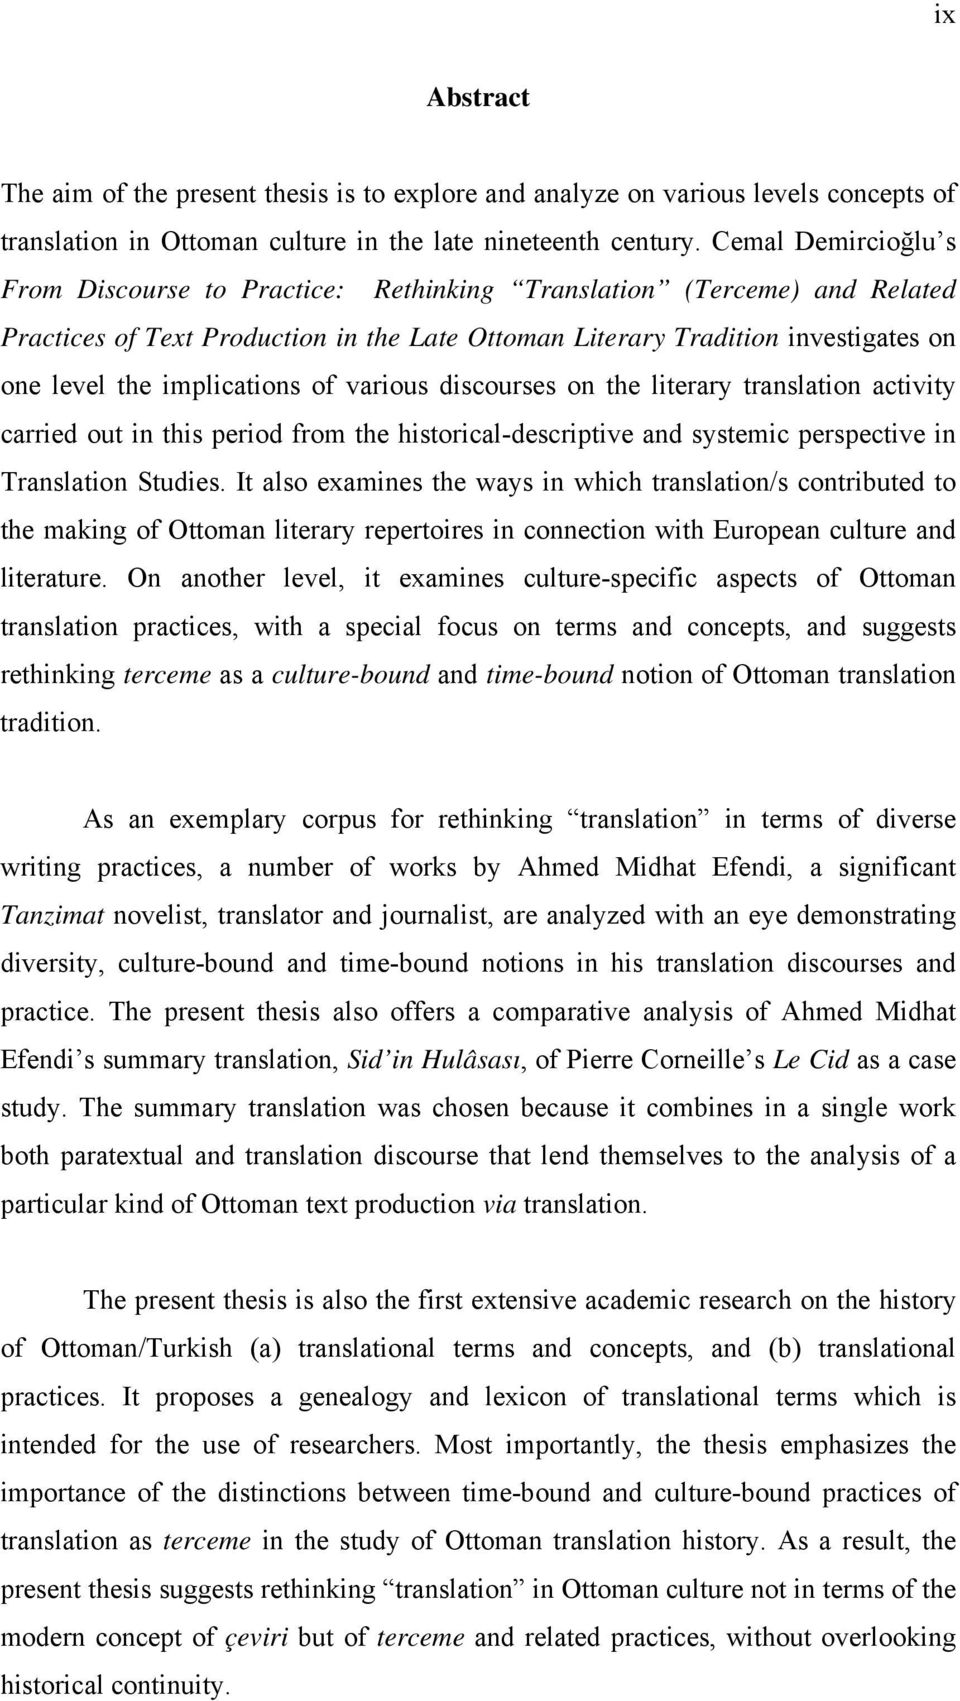 implications of various discourses on the literary translation activity carried out in this period from the historical-descriptive and systemic perspective in Translation Studies.